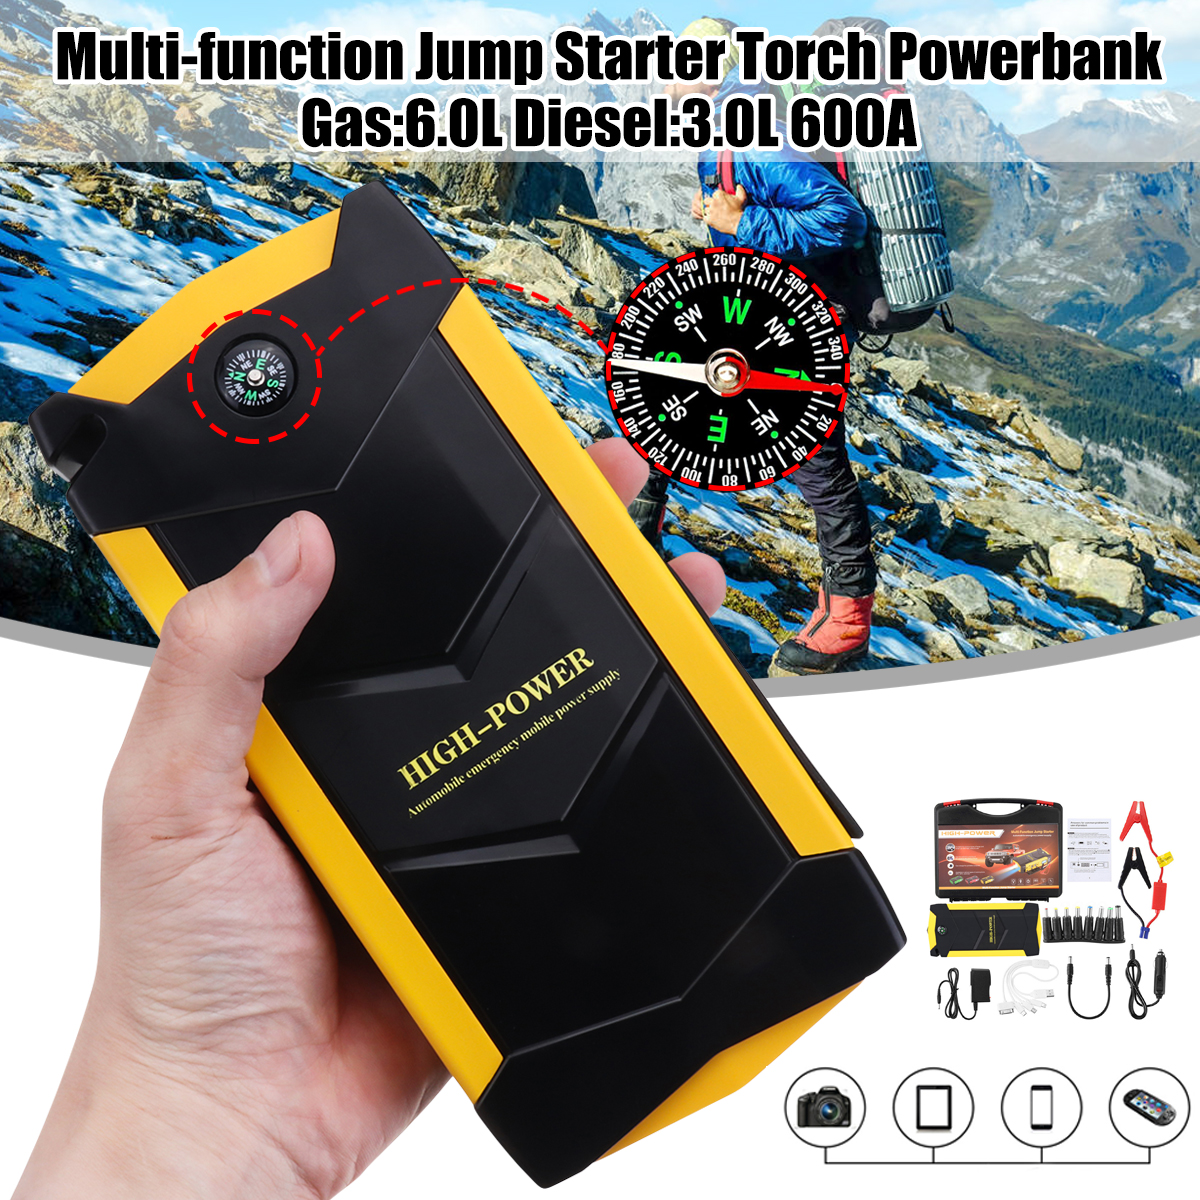 82800mAh 12V 4USB High Power Car Battery Charger Starting Car Jump Starter Booster Power Bank Tool Kit For Auto Starting Device multifunction jump starter 89800mah 12v 4usb 600a portable car battery booster charger booster power bank starting device